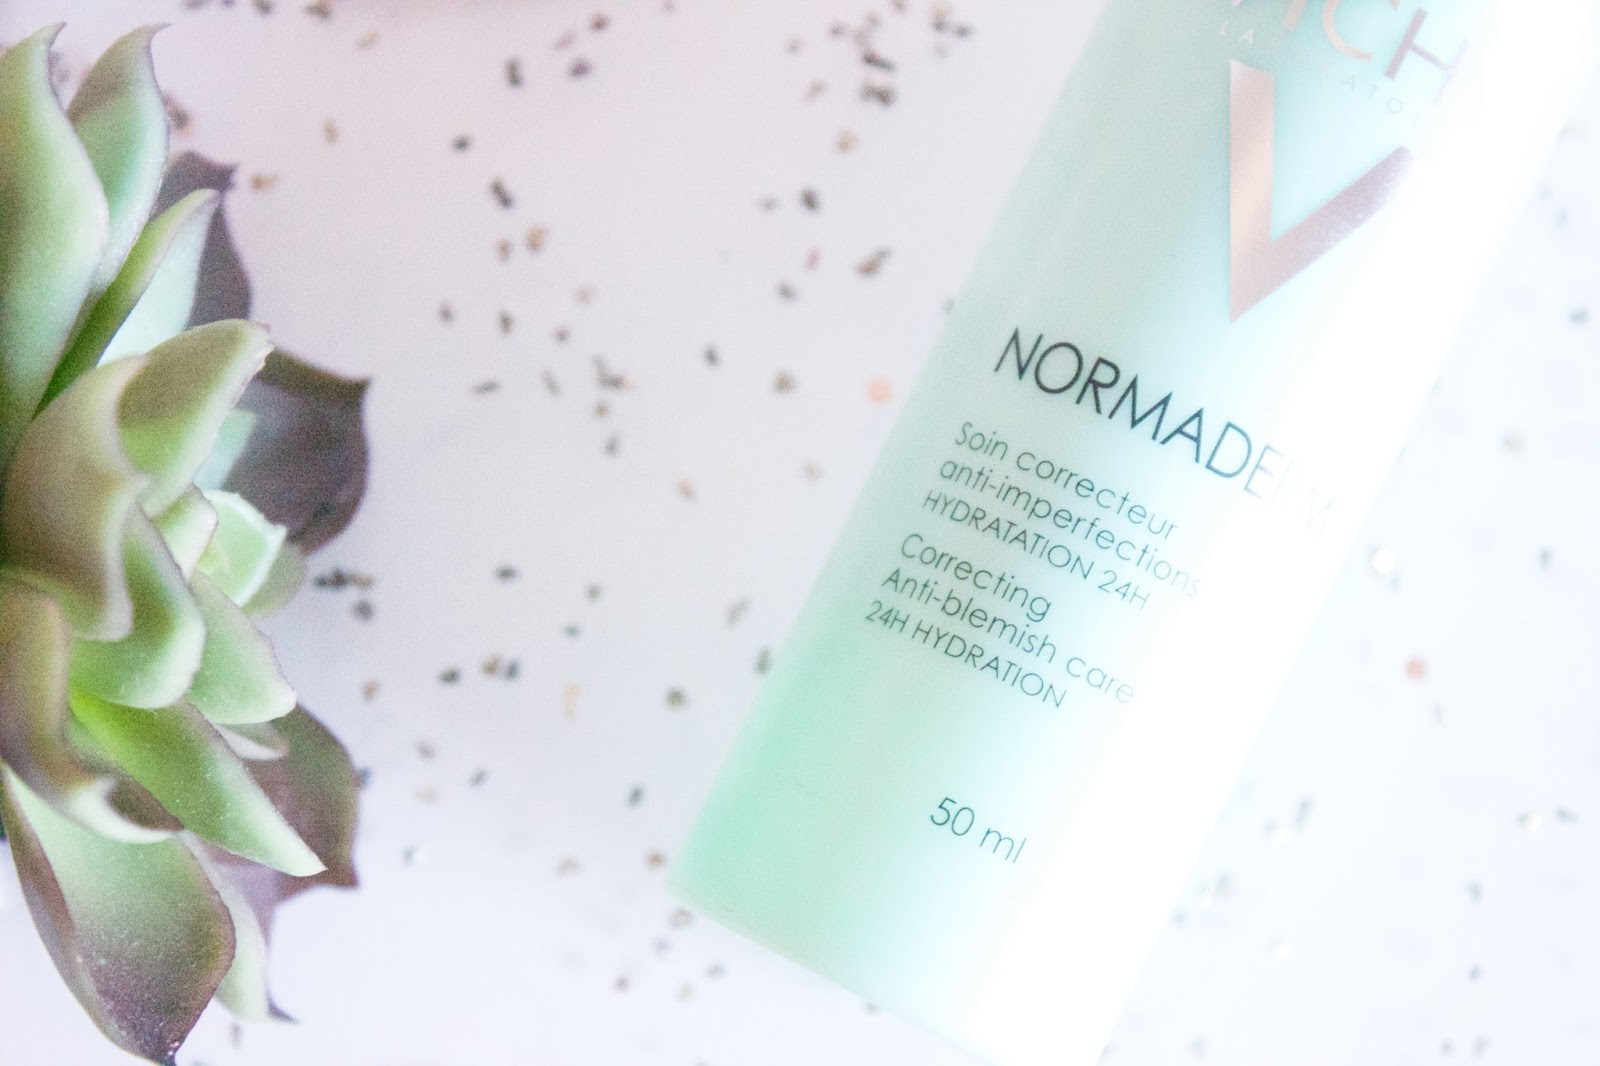 normaderm-soin-correcteur-anti-imperfections-vichy